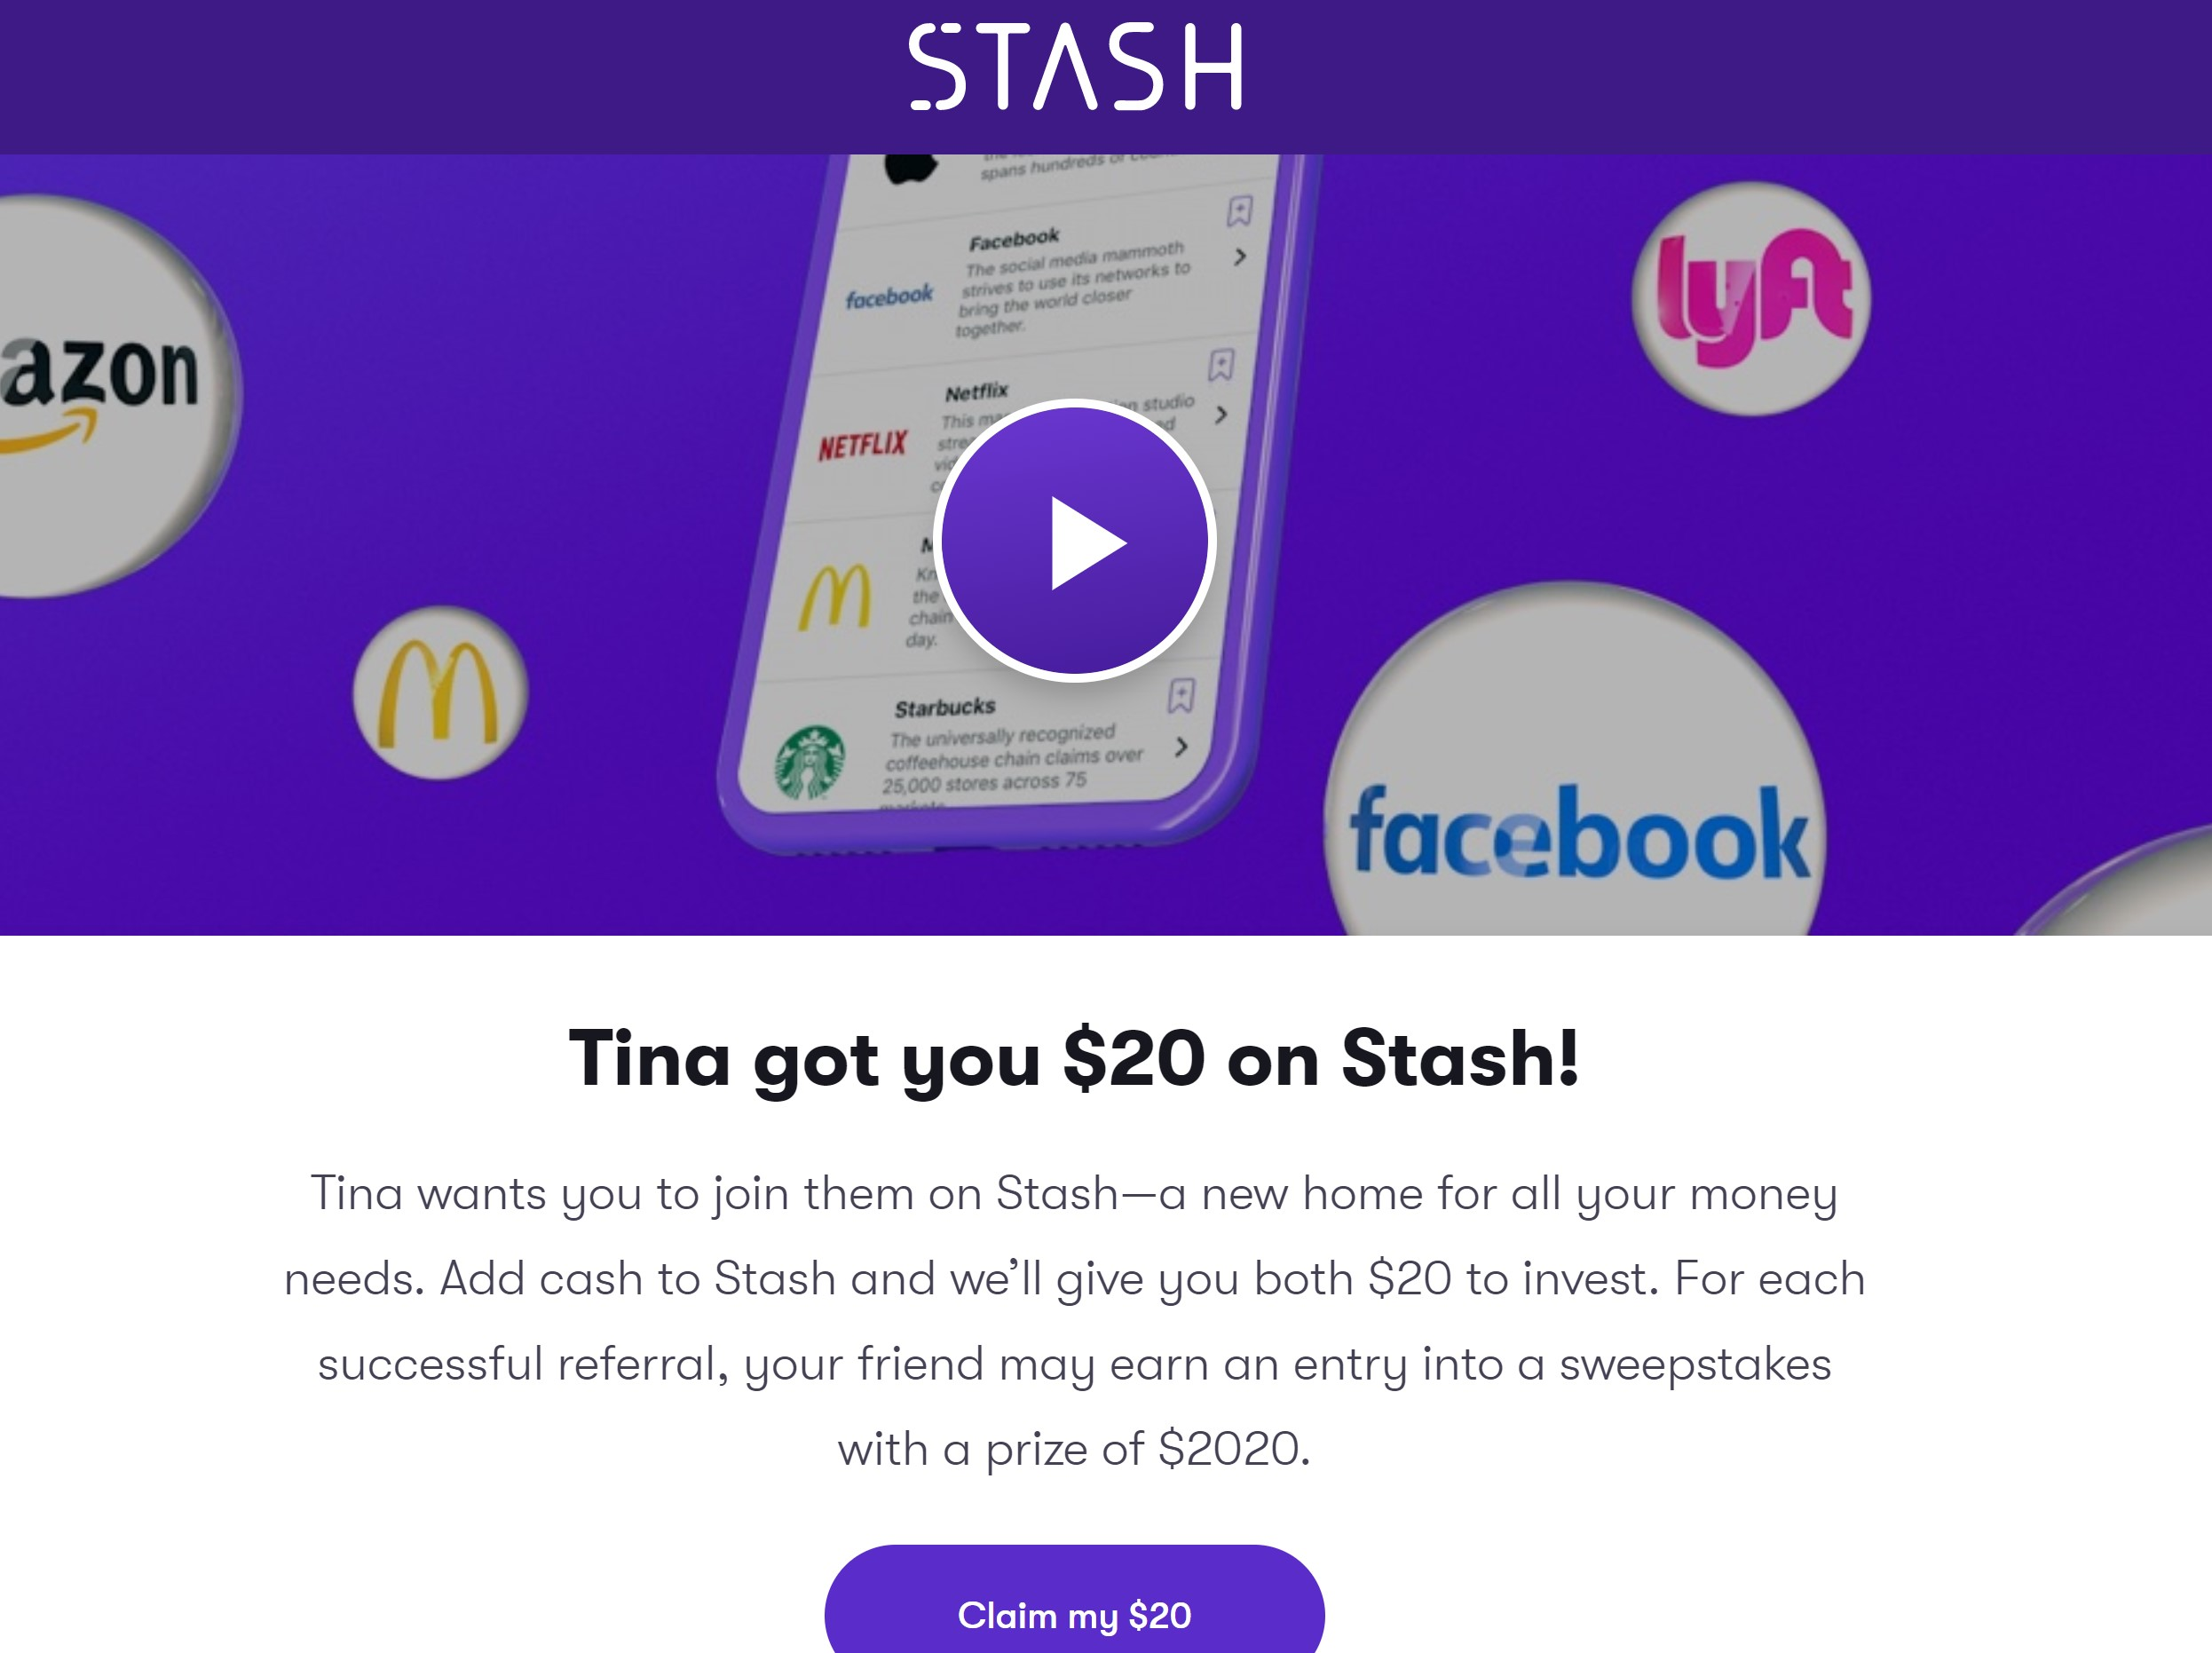 Get $20 when you invest $0.01 with Stash